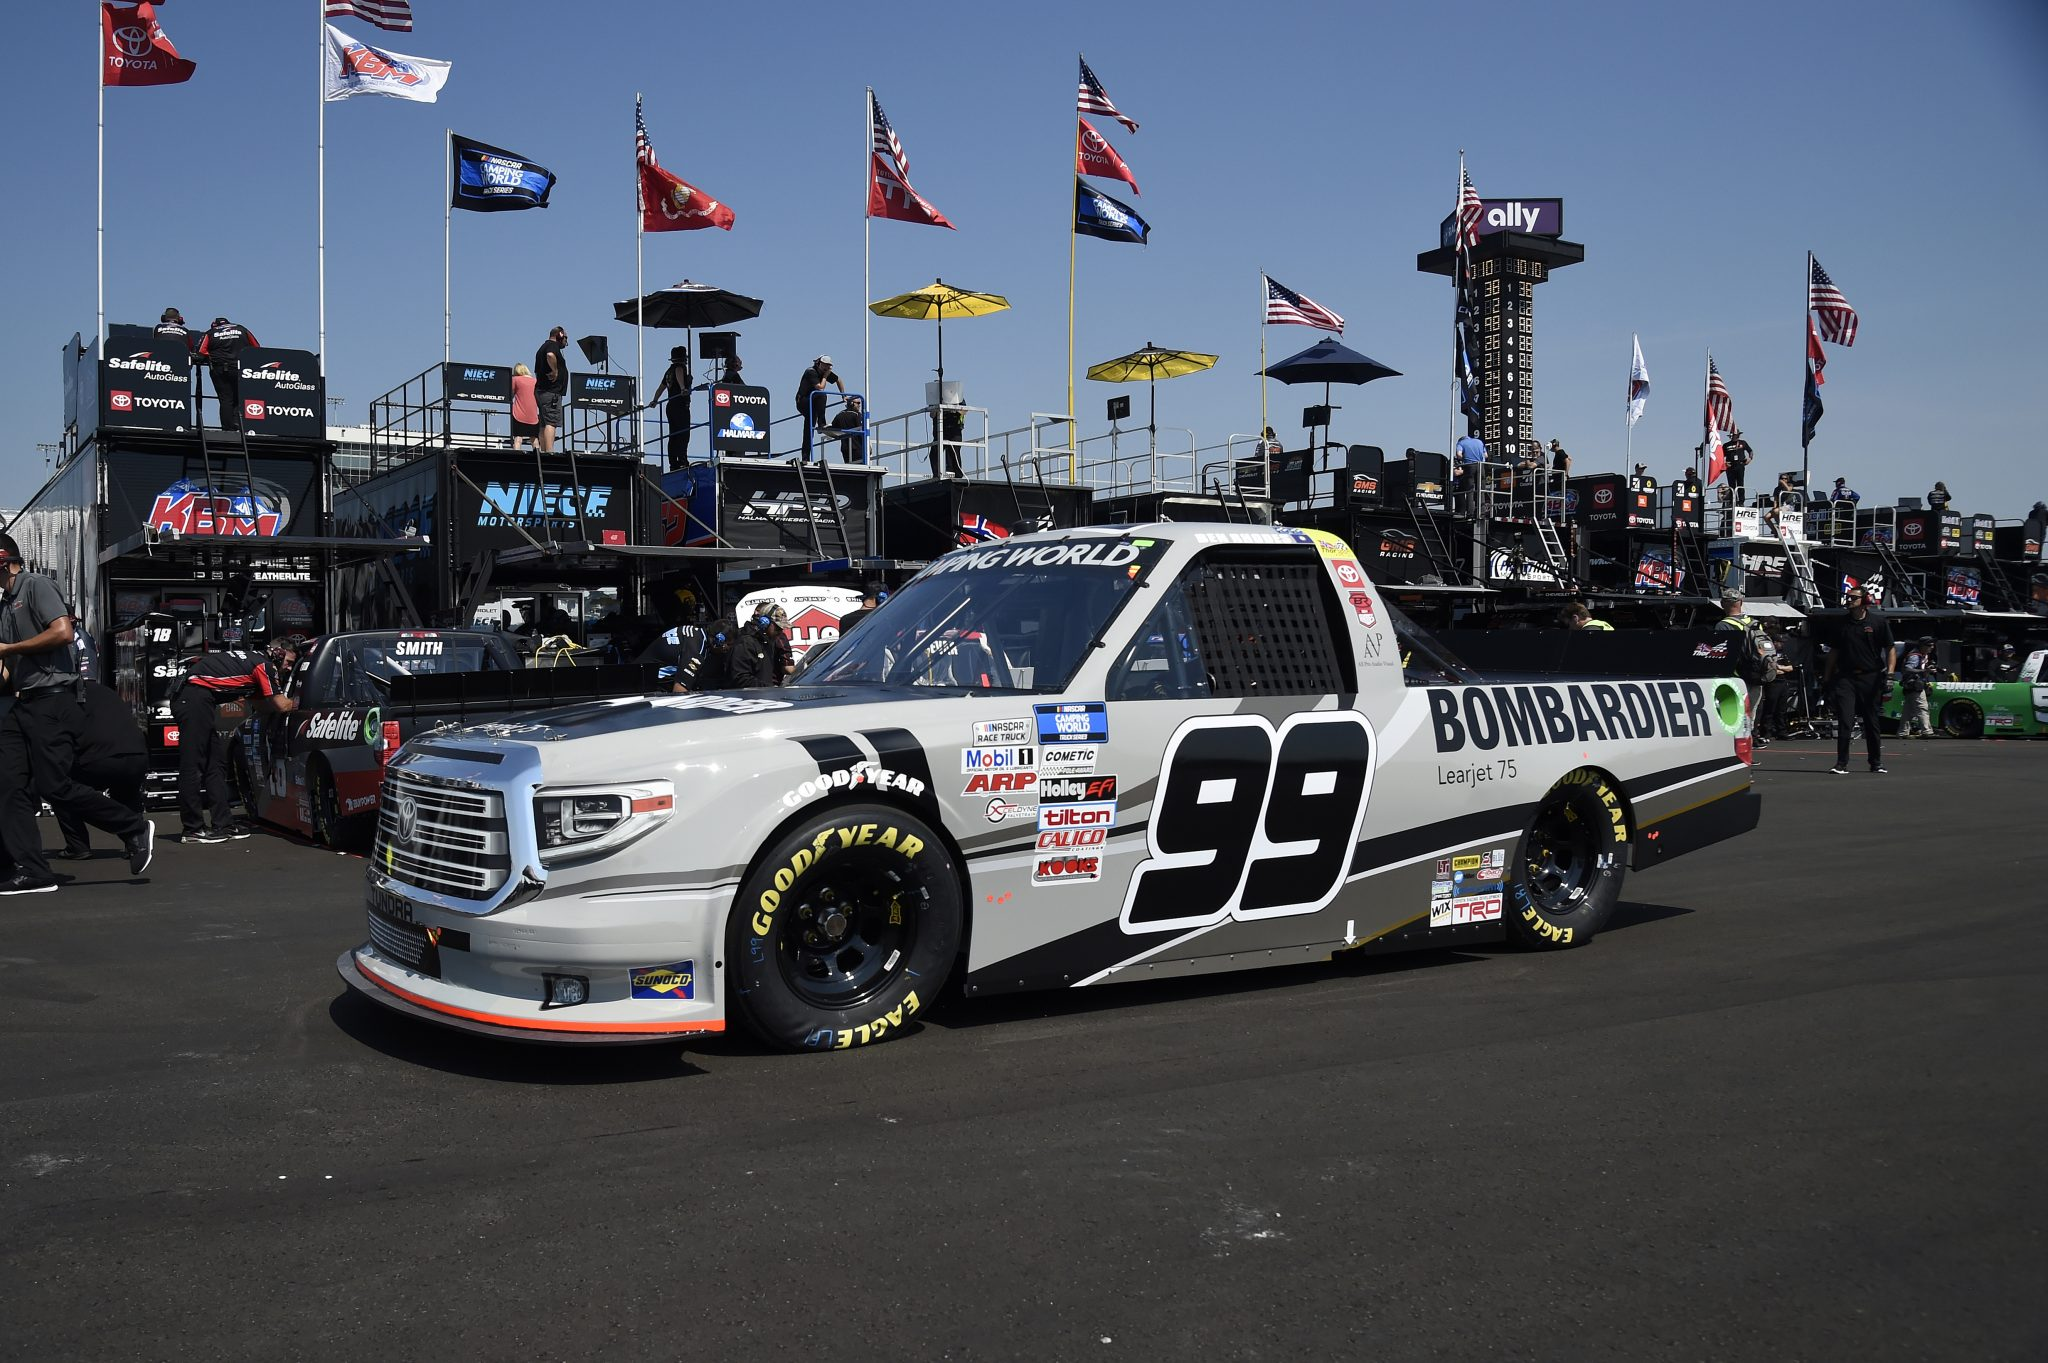 LEBANON, TENNESSEE - JUNE 18: Ben Rhodes, driver of the #99 Bombardier LearJet 75 Toyota, drives in the garage area during practice for the NASCAR Camping World Truck Series Rackley Roofing 200 at Nashville Superspeedway on June 18, 2021 in Lebanon, Tennessee. (Photo by Logan Riely/Getty Images) | Getty Images